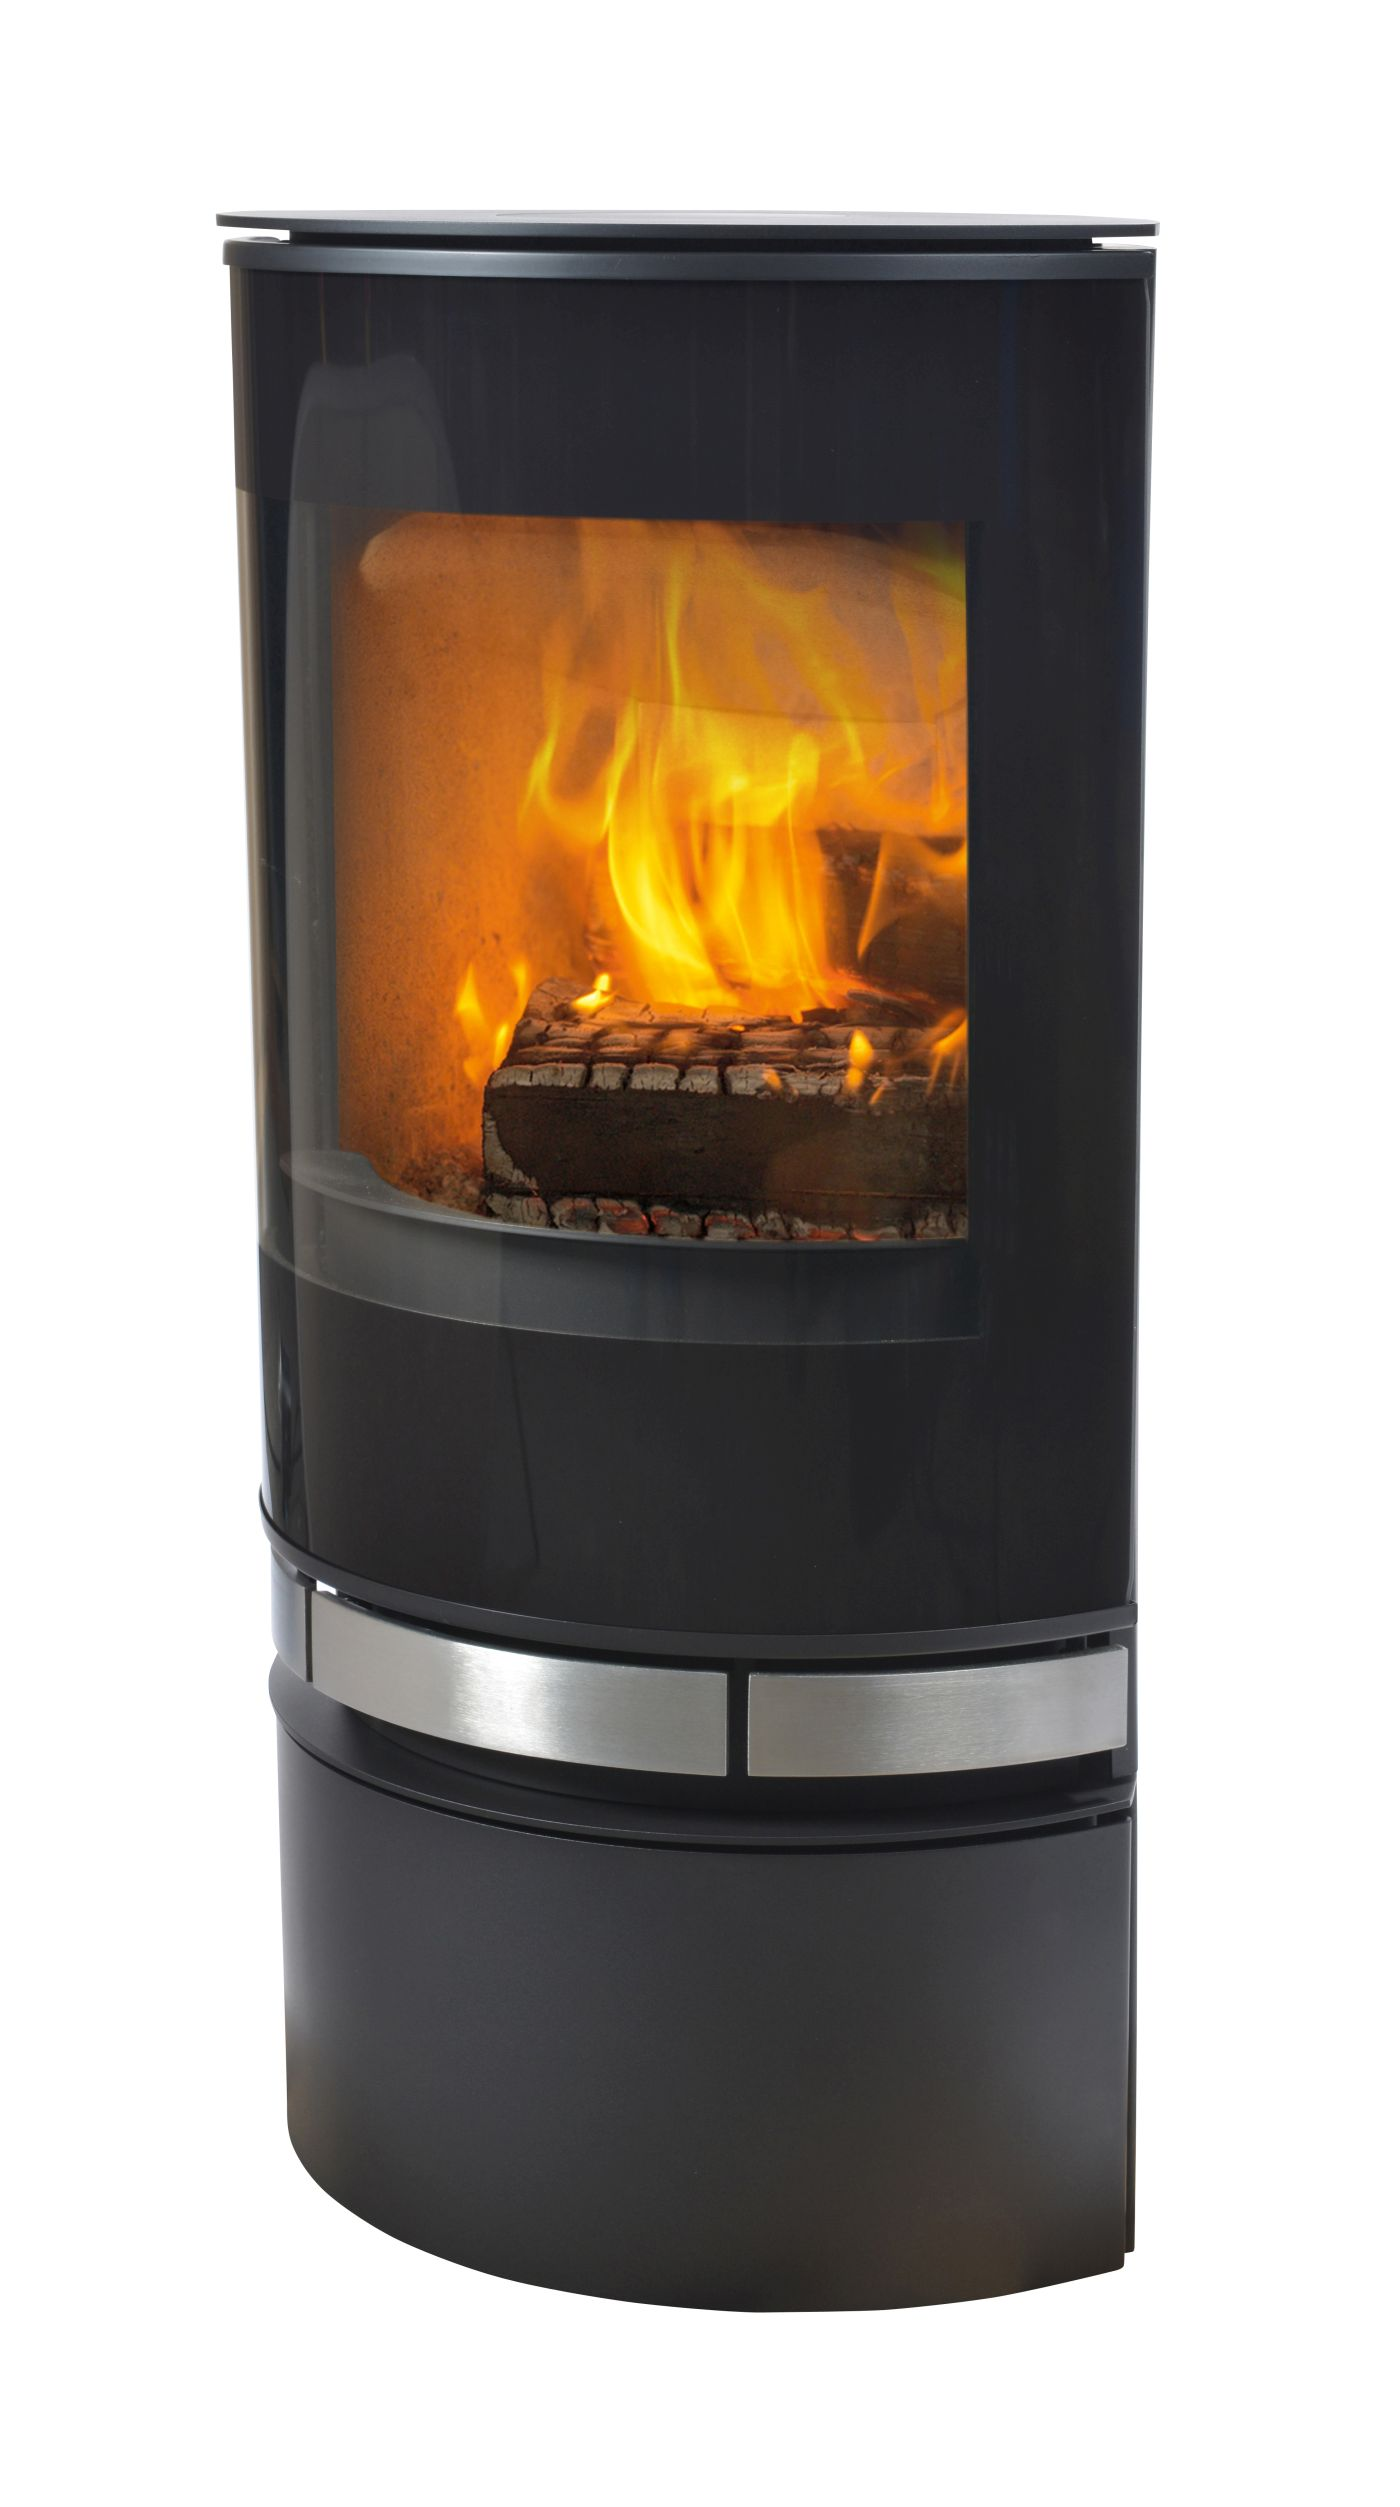 elegance junior wood burning stove unused free shipping dk ps